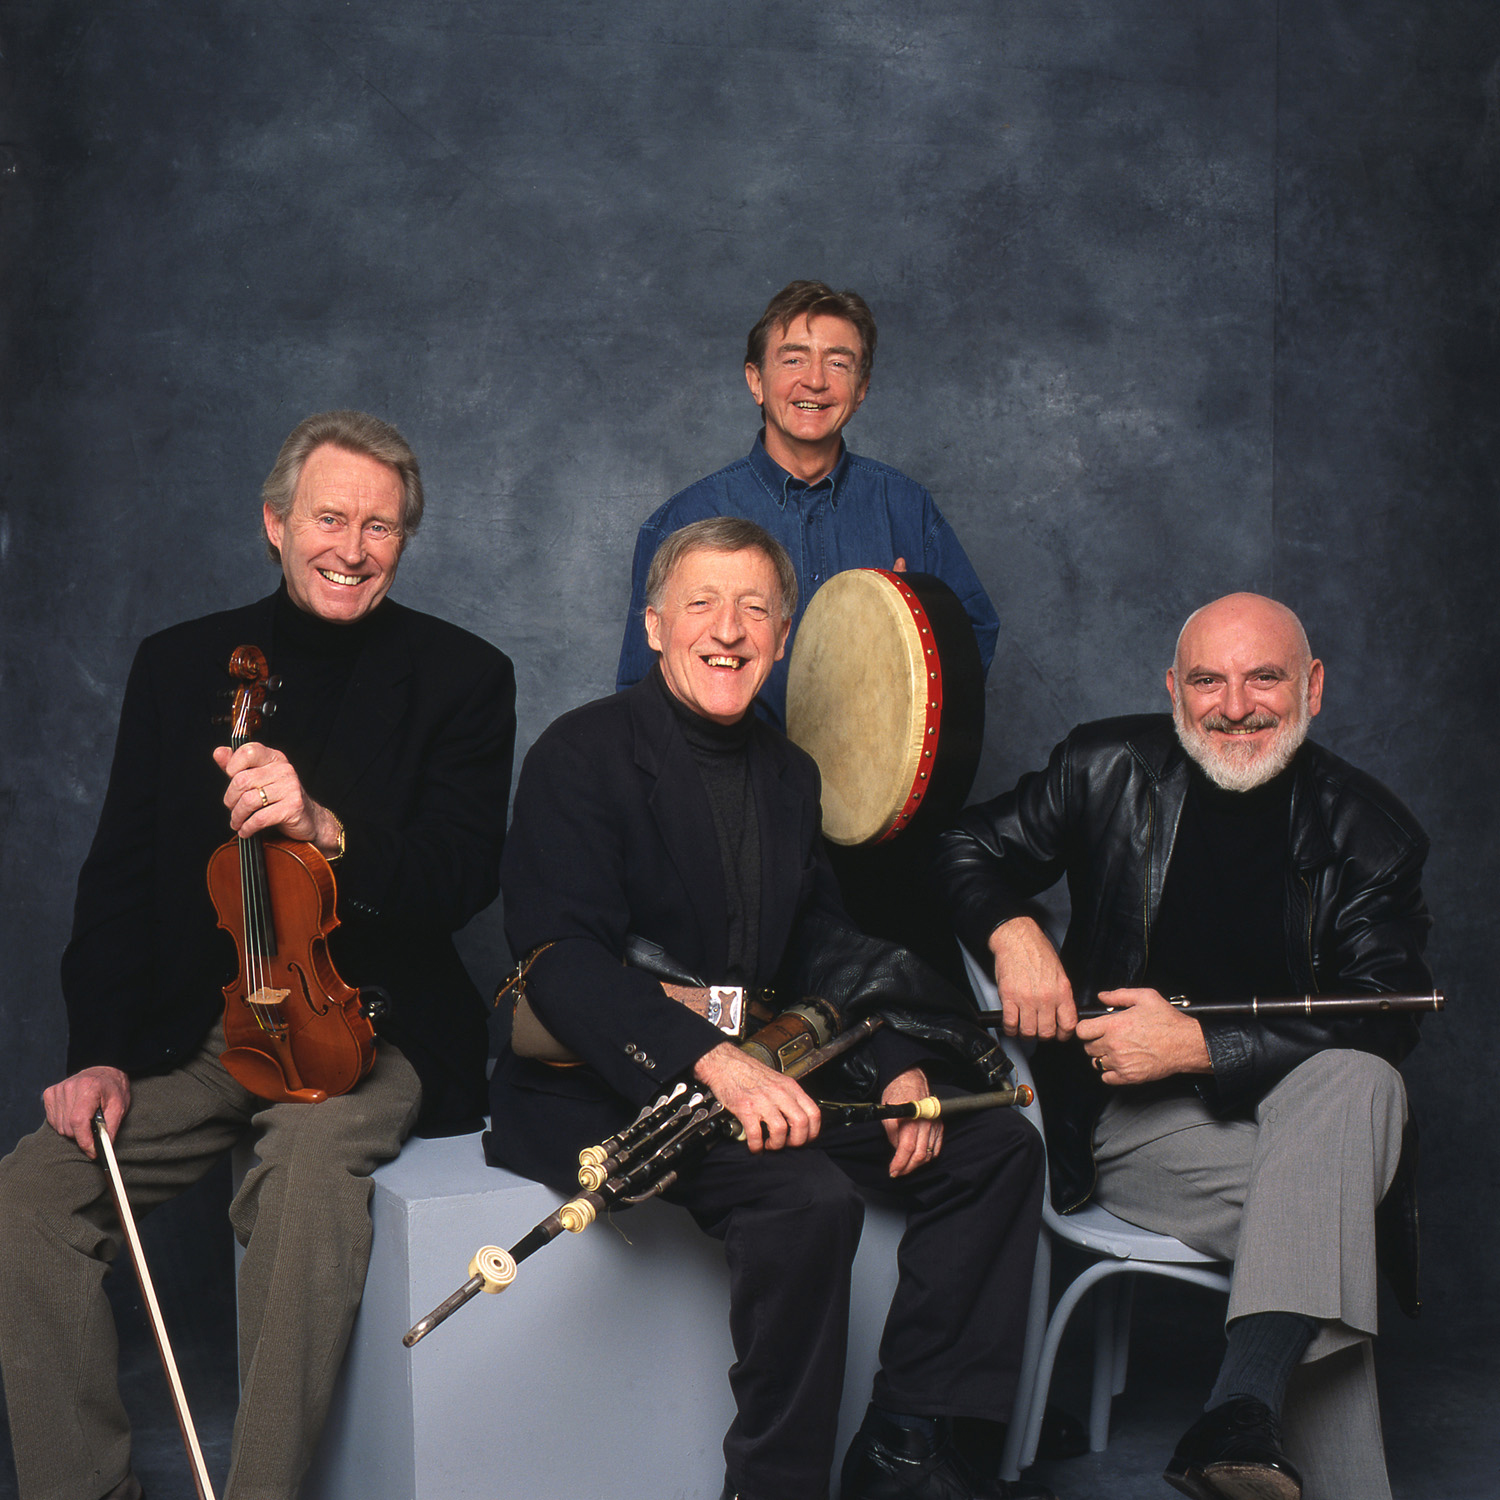 St. Paddy's Week:  Chieftains headline a weeklong celebration of Irish music and events